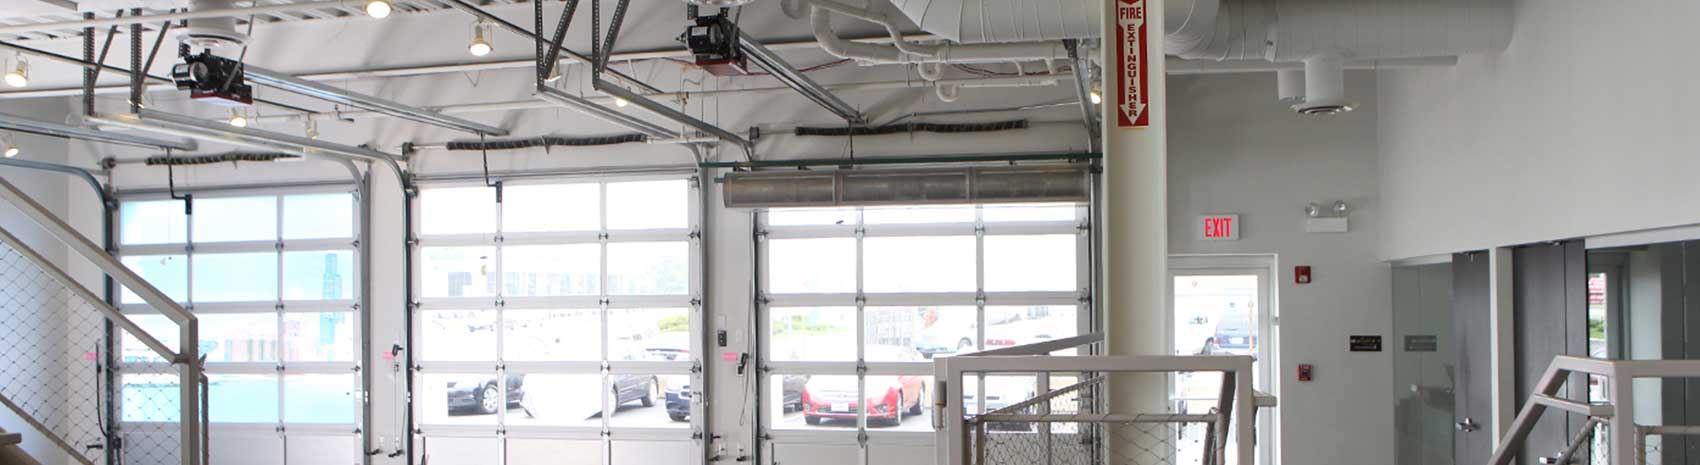 commercial garage door openers